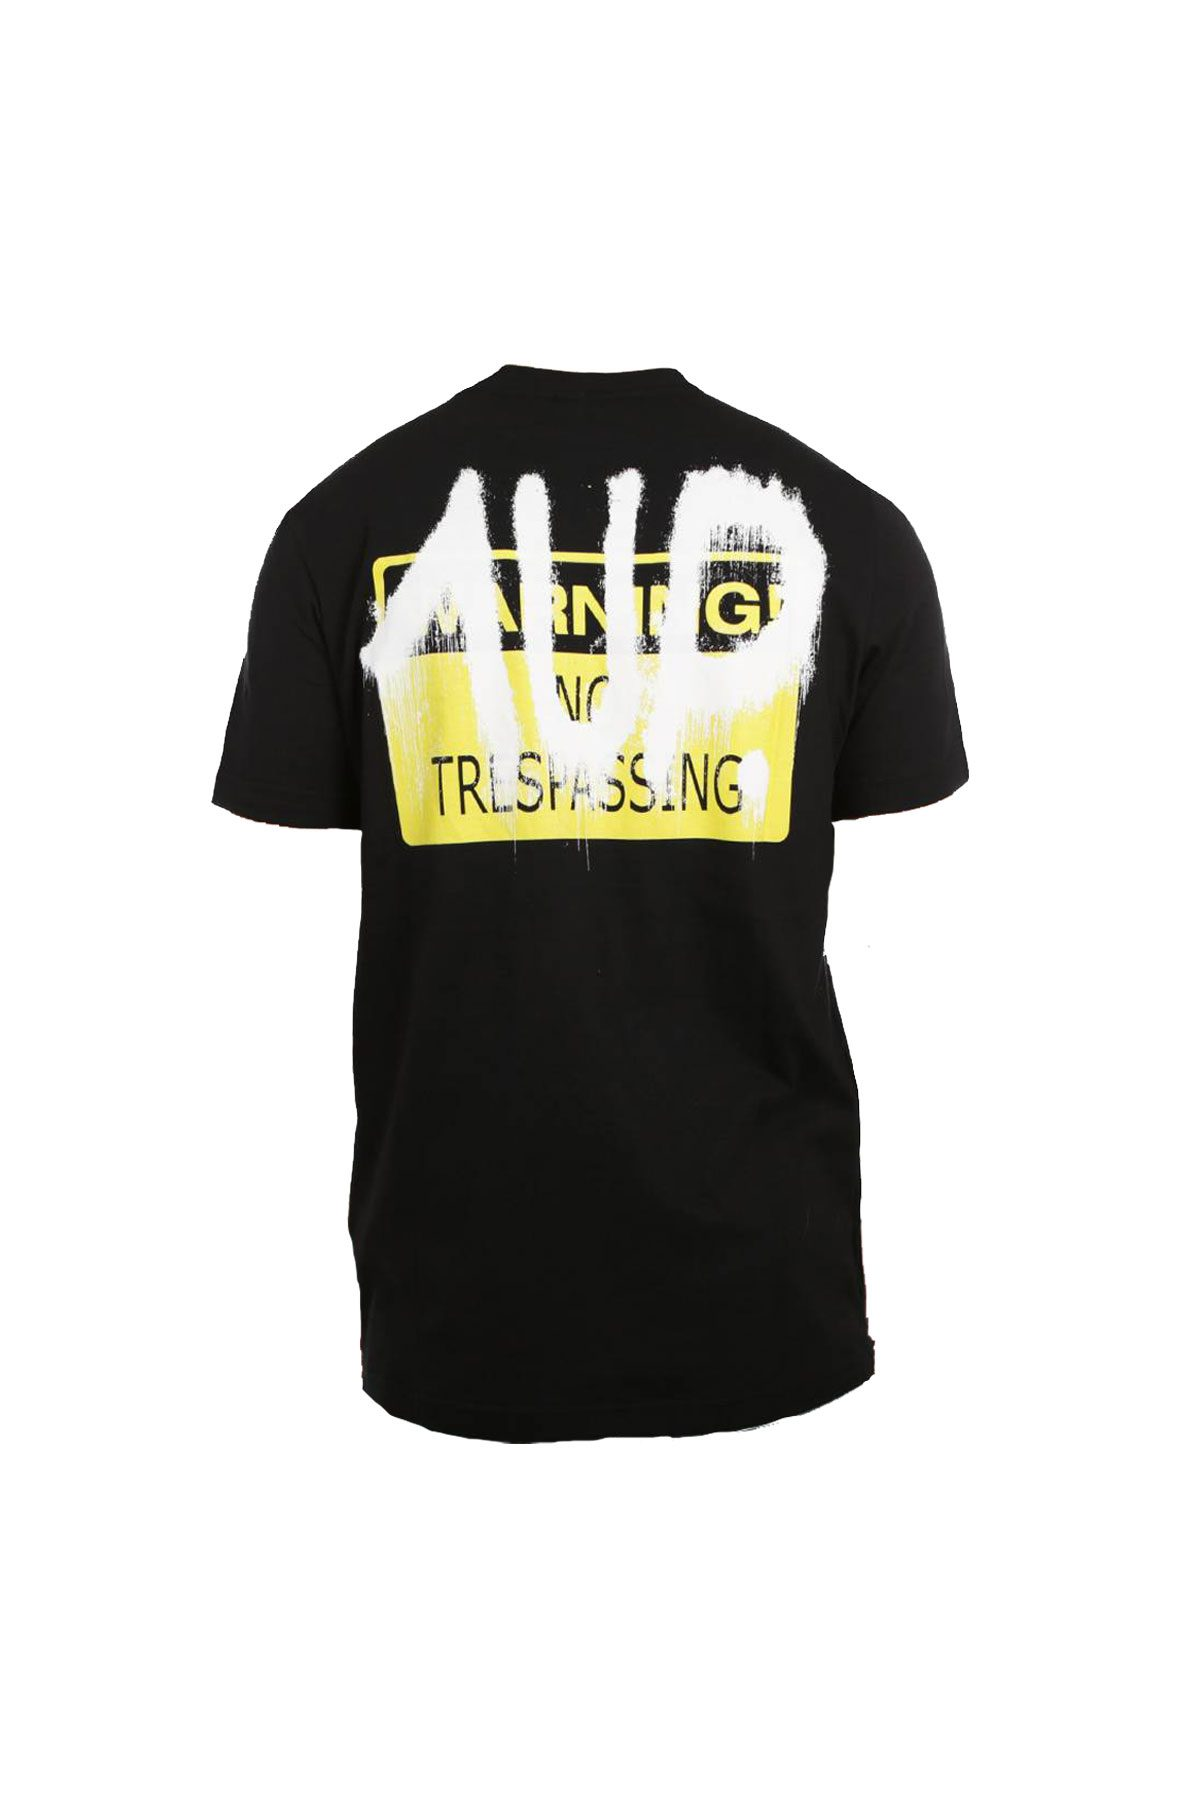 1UP NO TRESPASSING T-Shirt